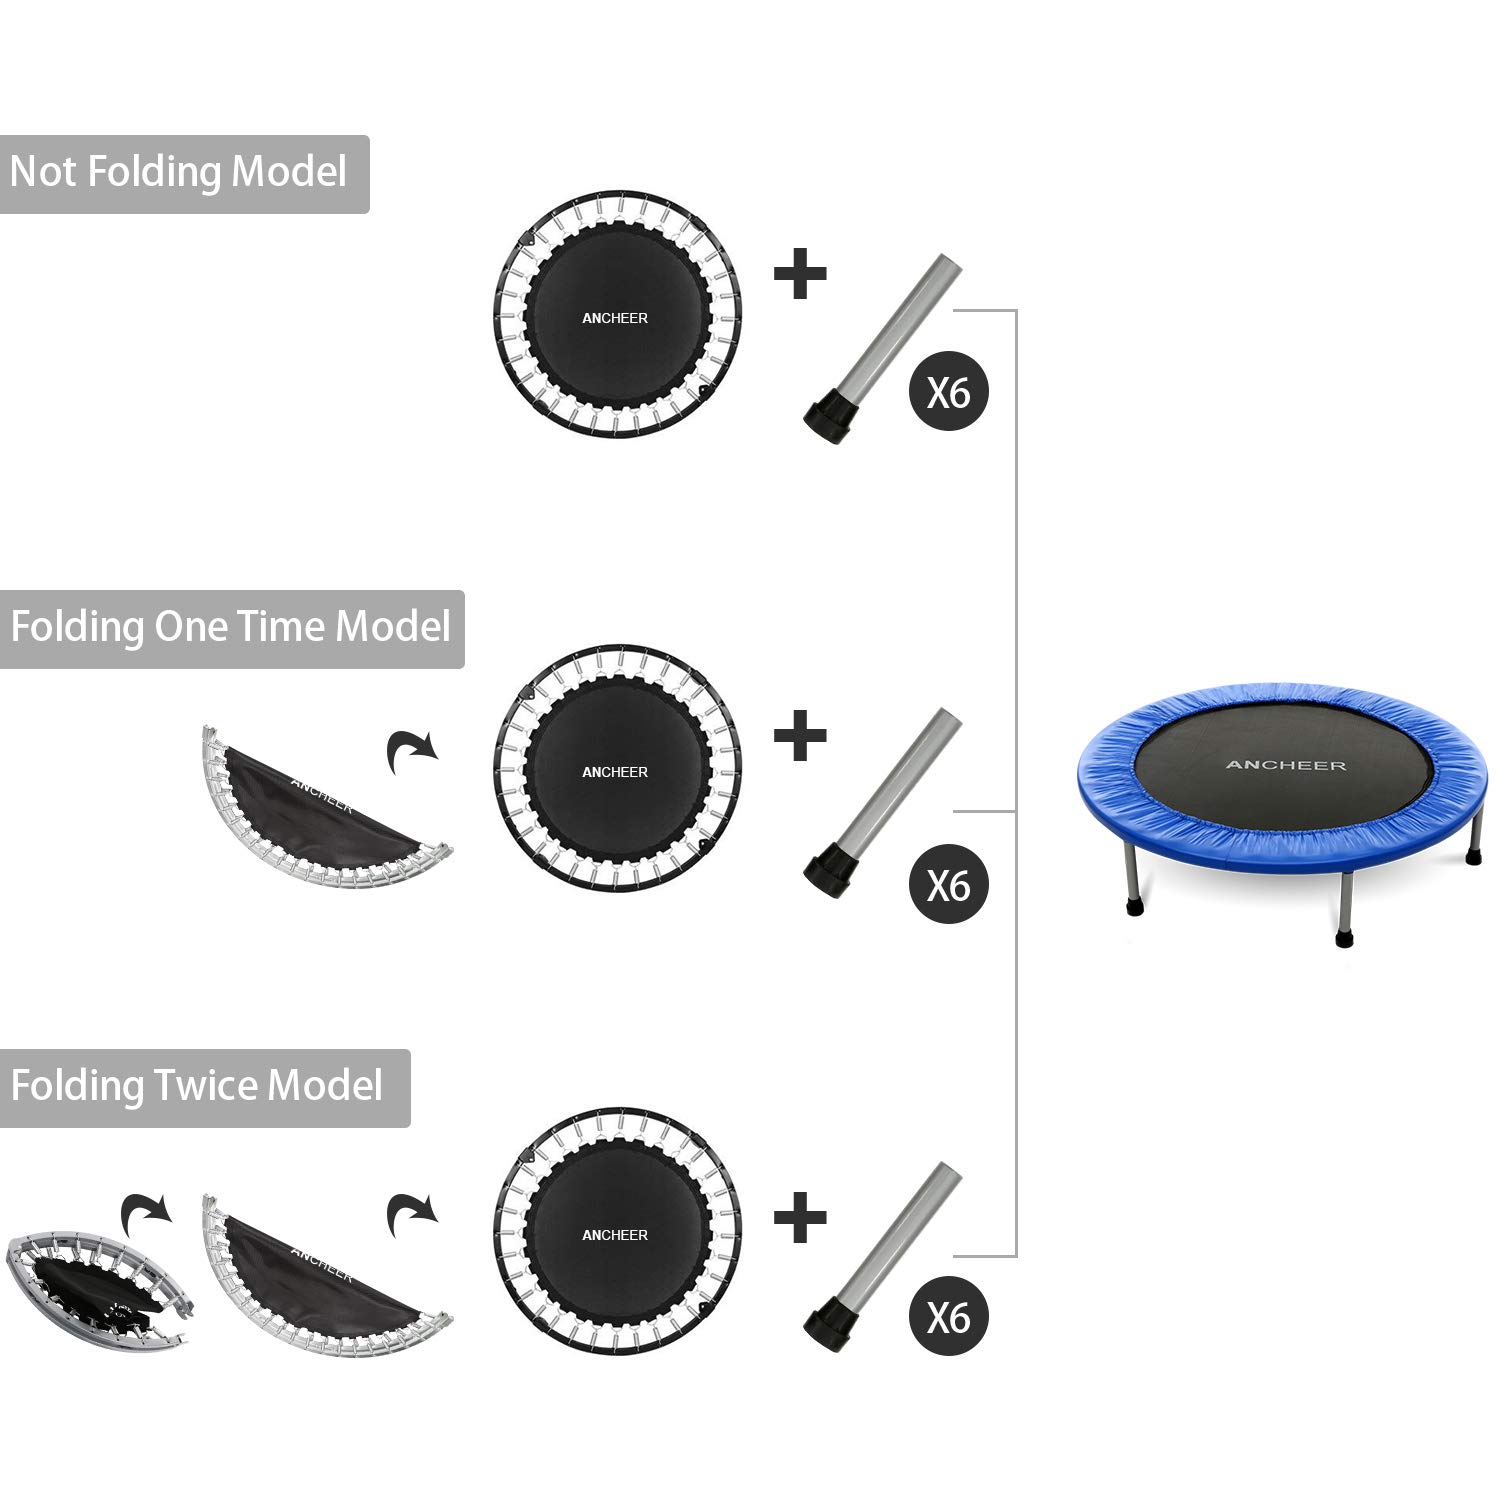 ANCHEER Mini Trampoline with Safety Pad (Blue, 40inch-Not Folding) by ANCHEER (Image #4)